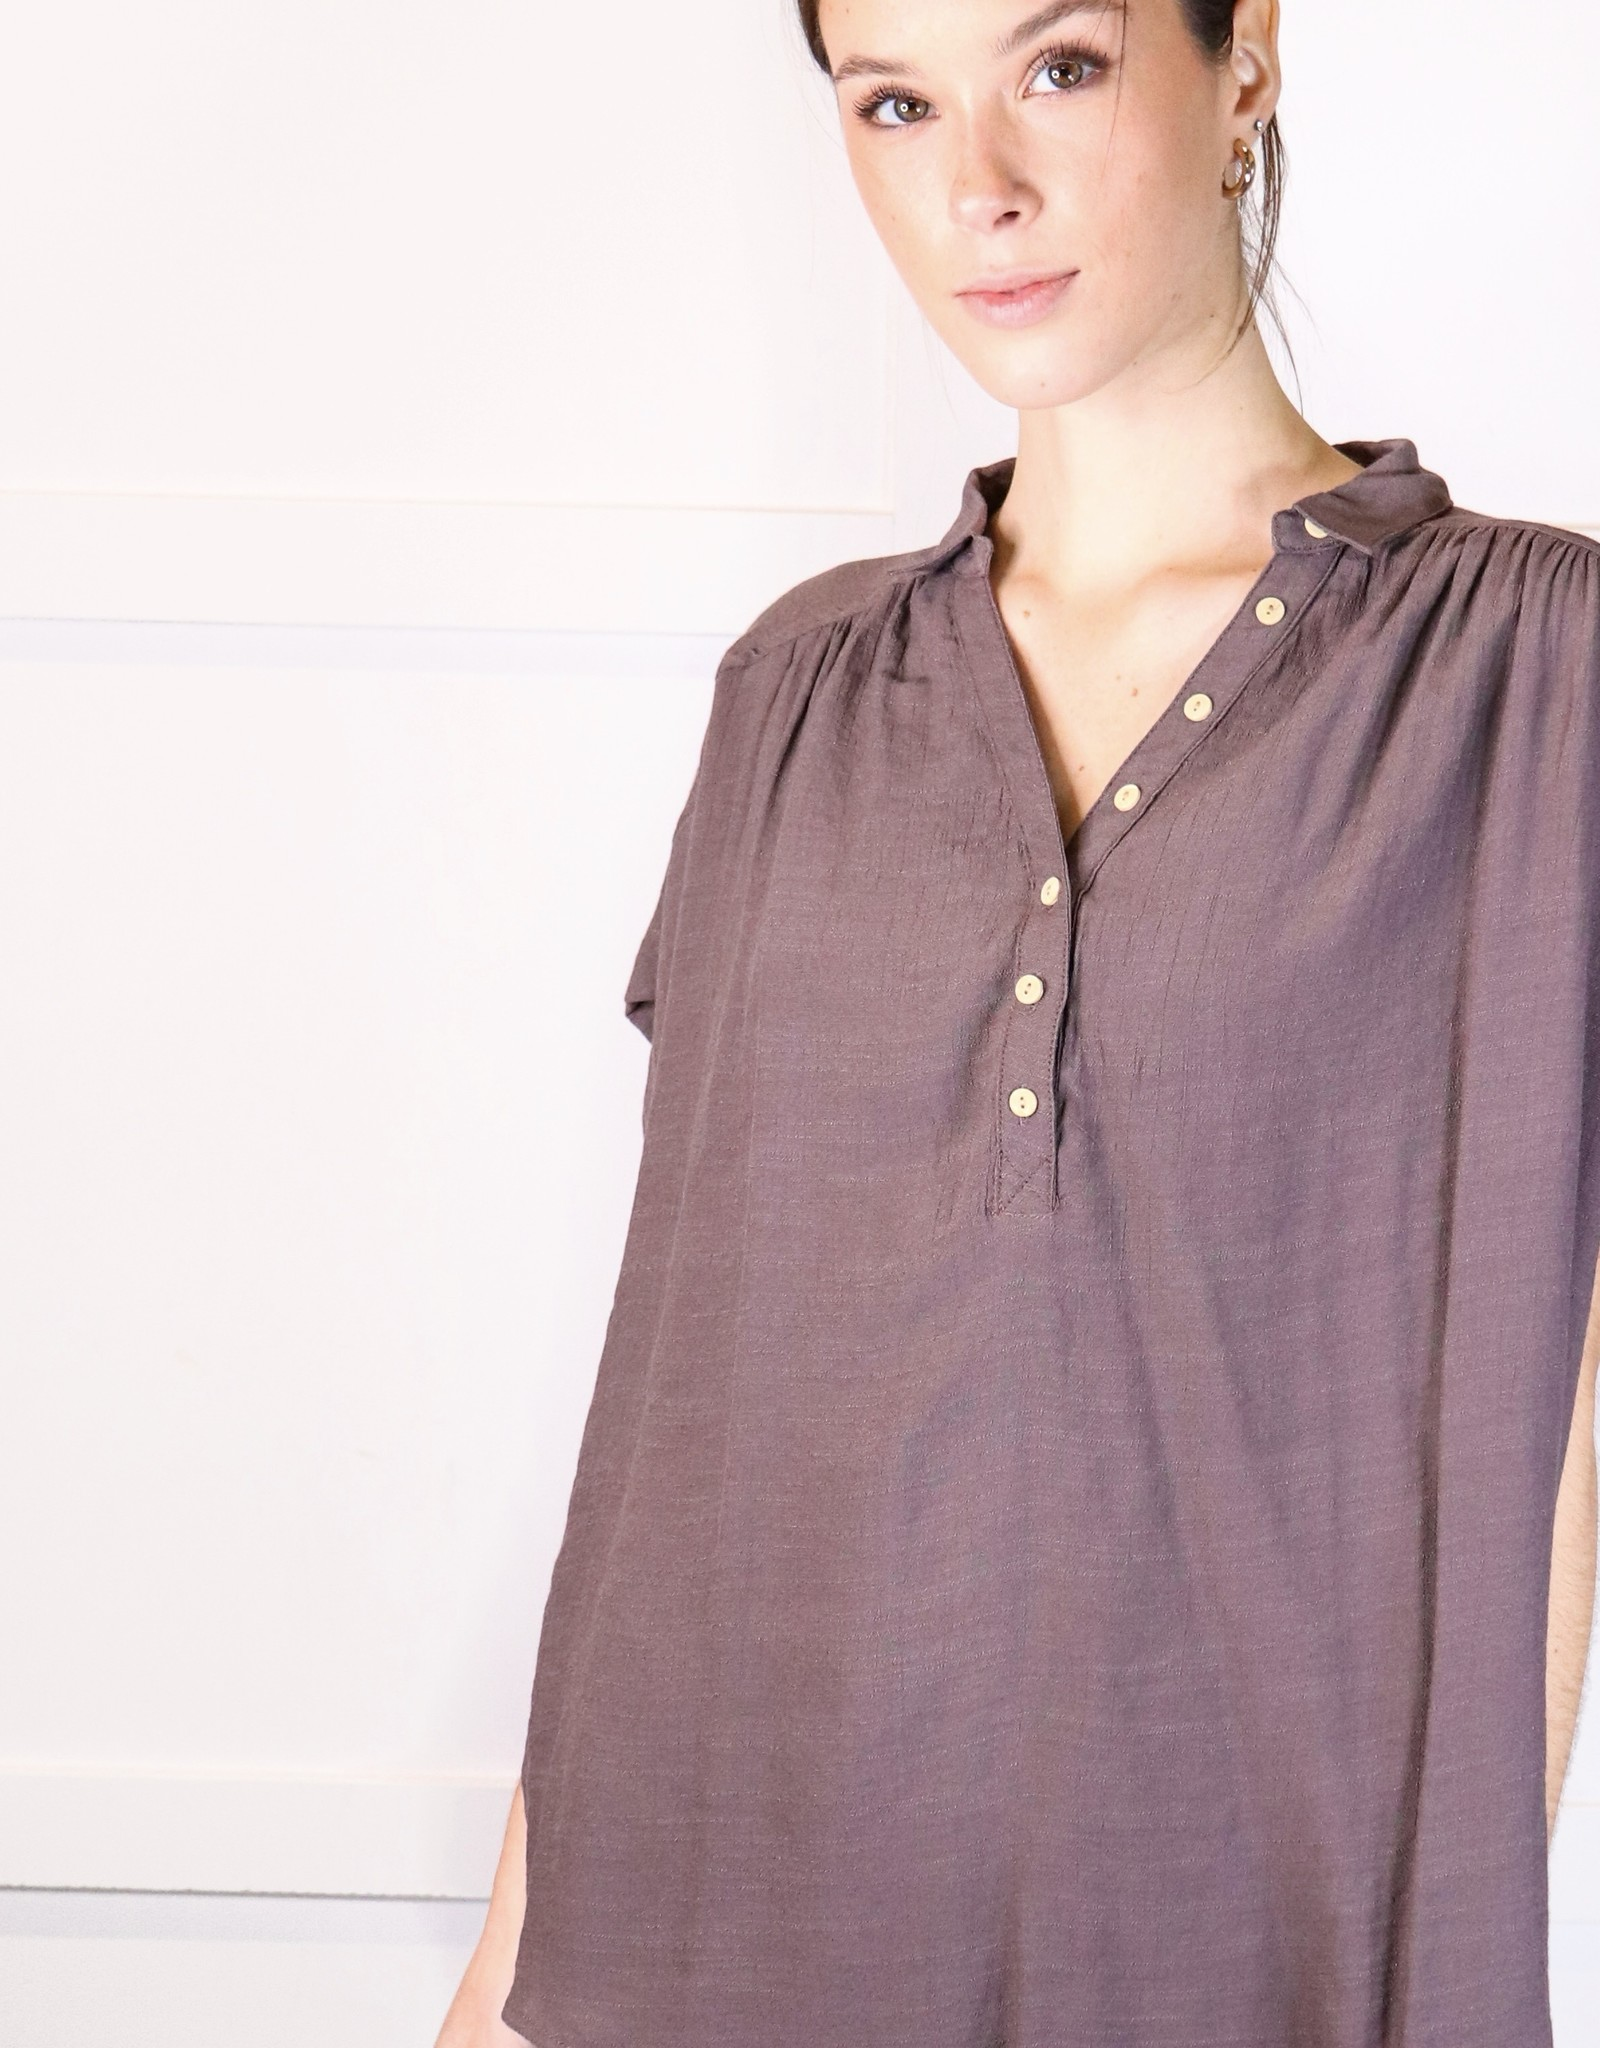 HUSH Relaxed fit v neck button down